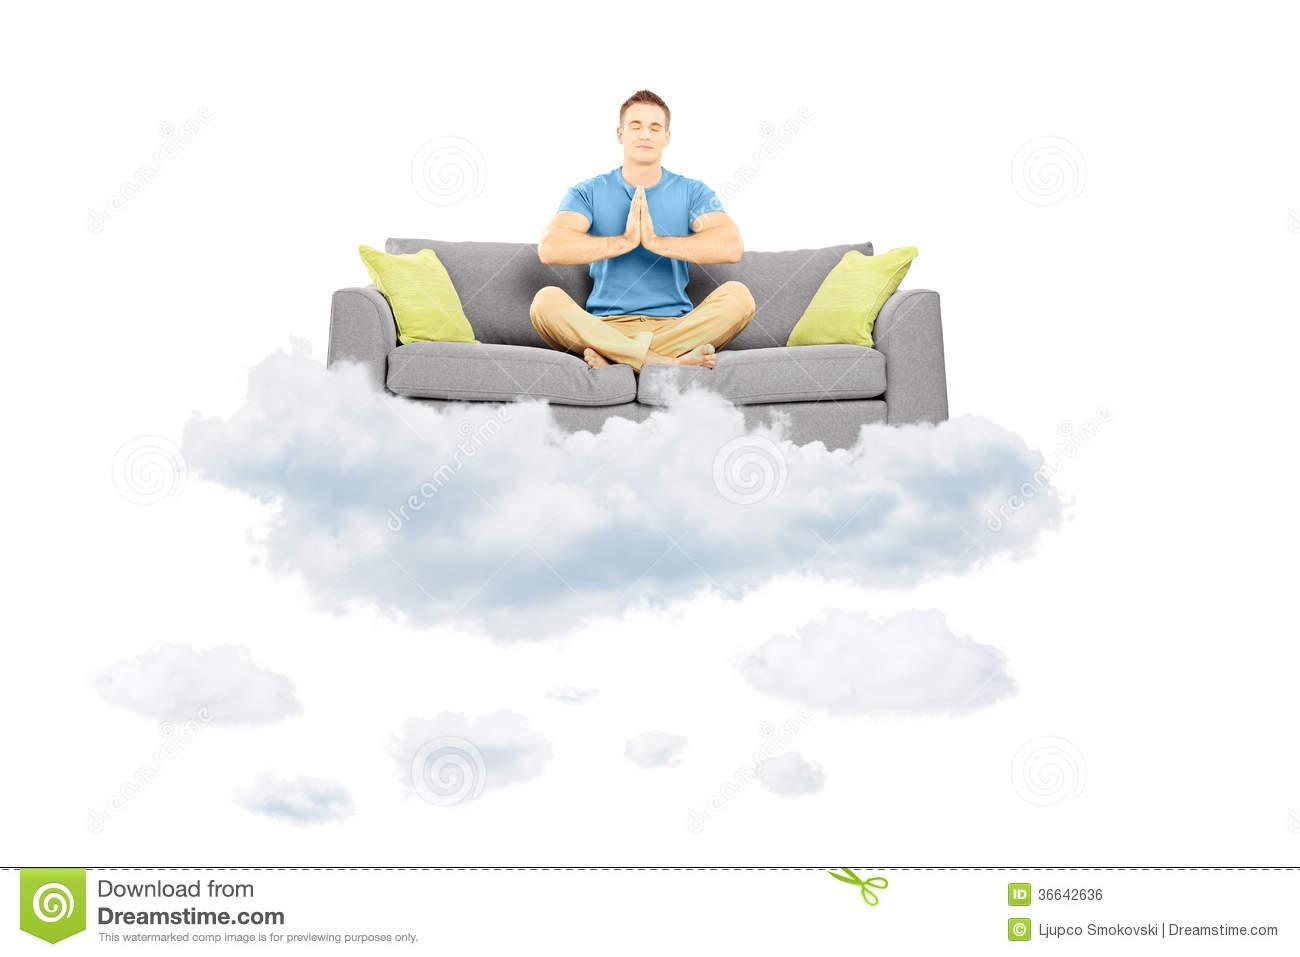 Guy Meditating On A Sofa And Floating On A Cloud Royalty Free Intended For Floating Cloud Couches (View 3 of 21)